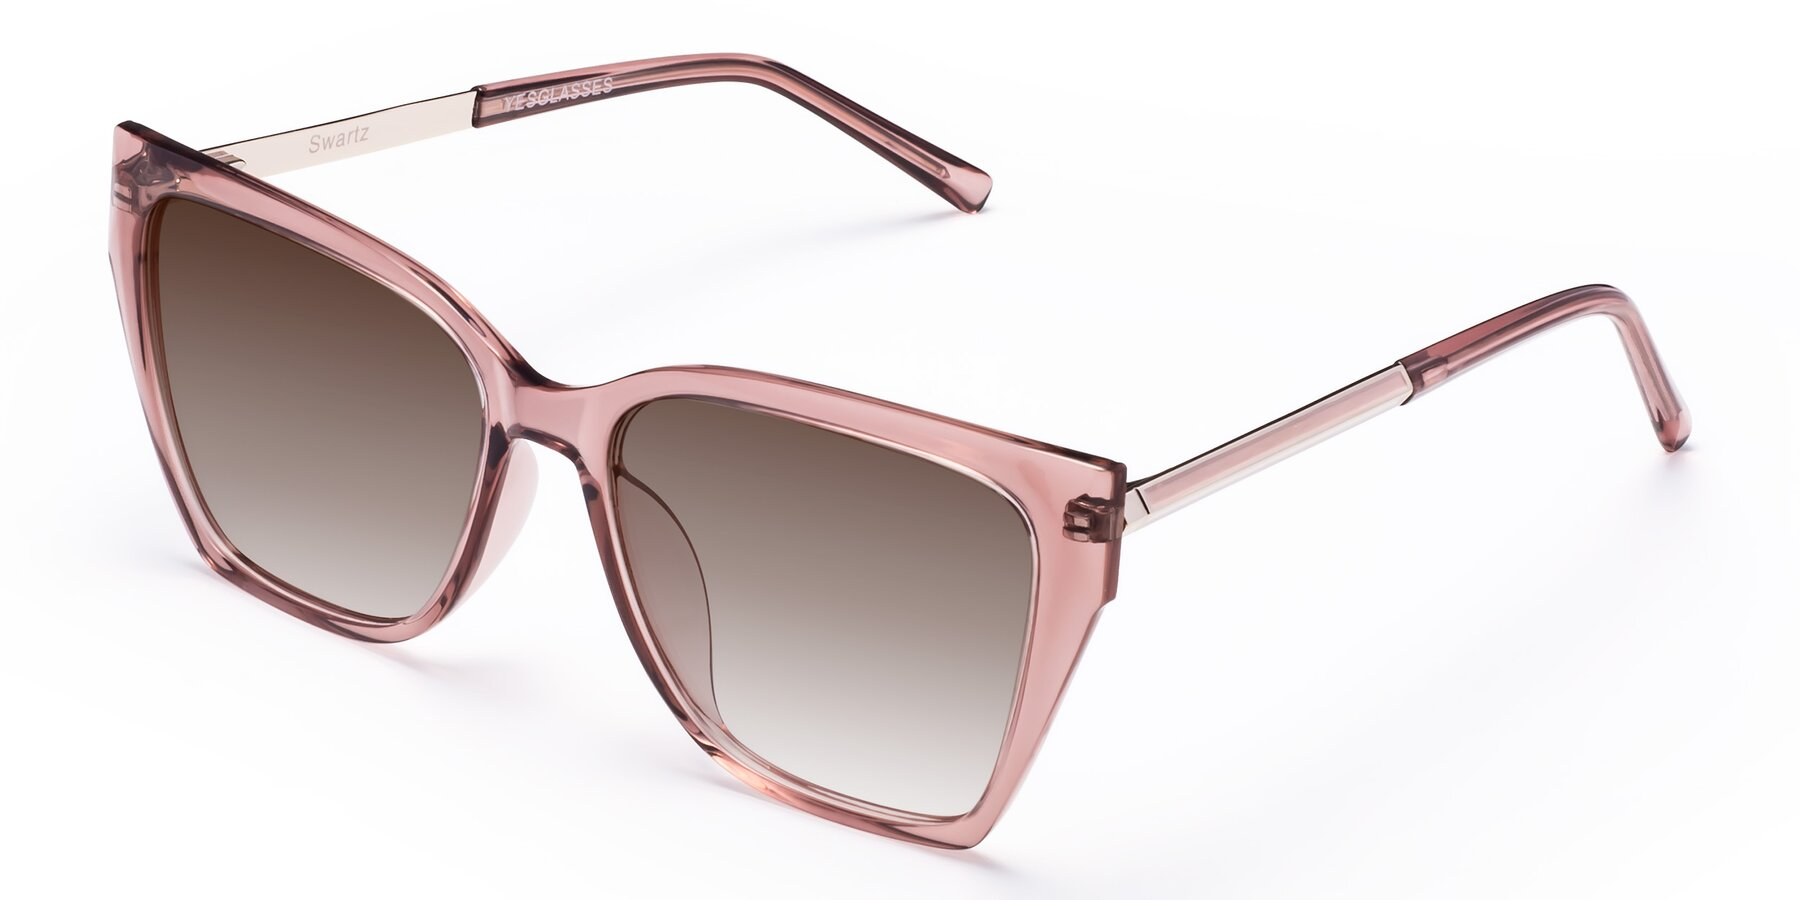 Angle of Swartz in Grape with Brown Gradient Lenses